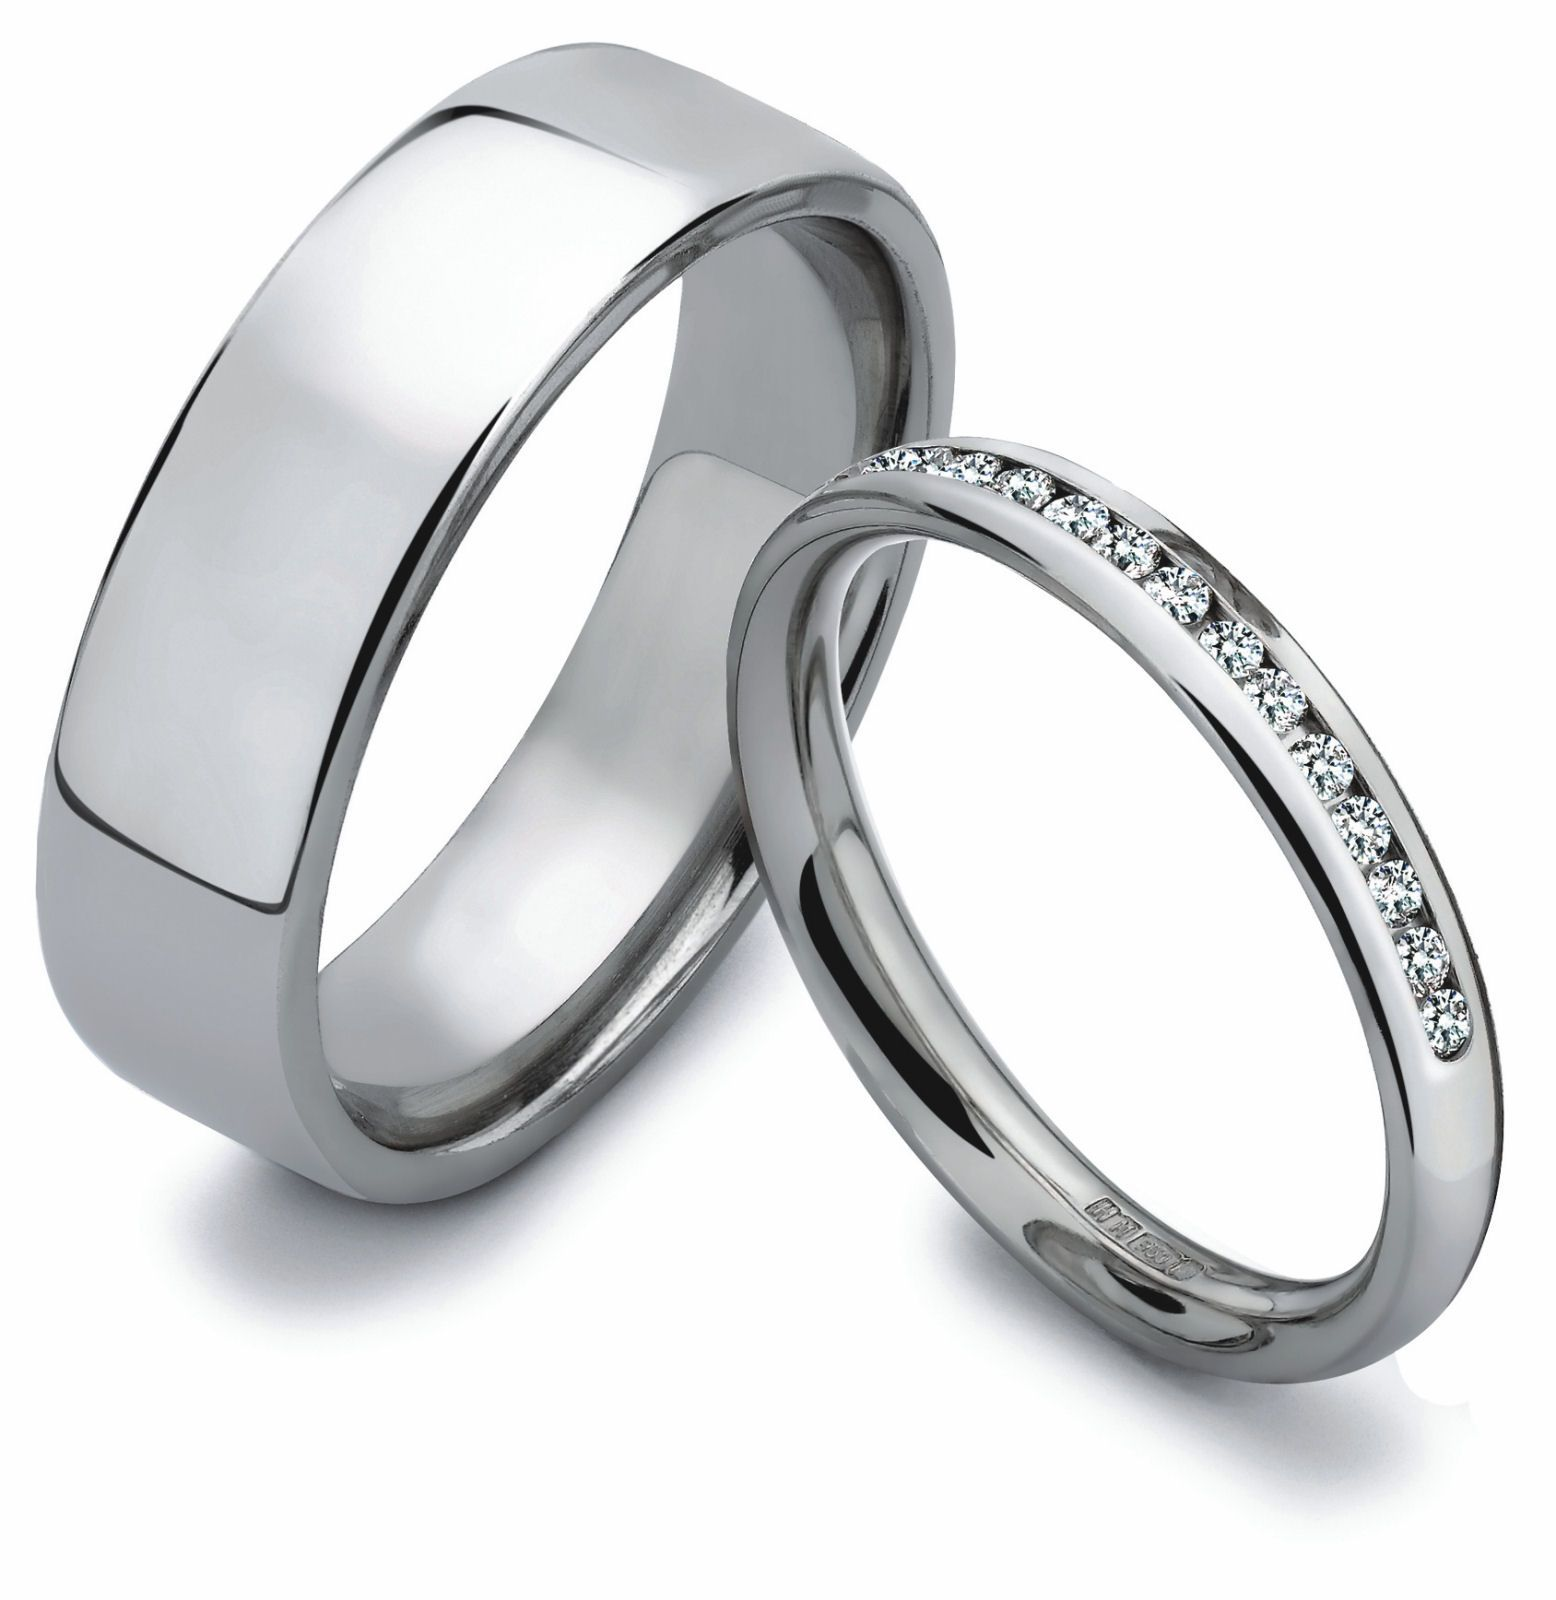 wedding rings sets for him and her with regard to personalized wedding bands wedding rings sets - His And Hers Wedding Rings Cheap